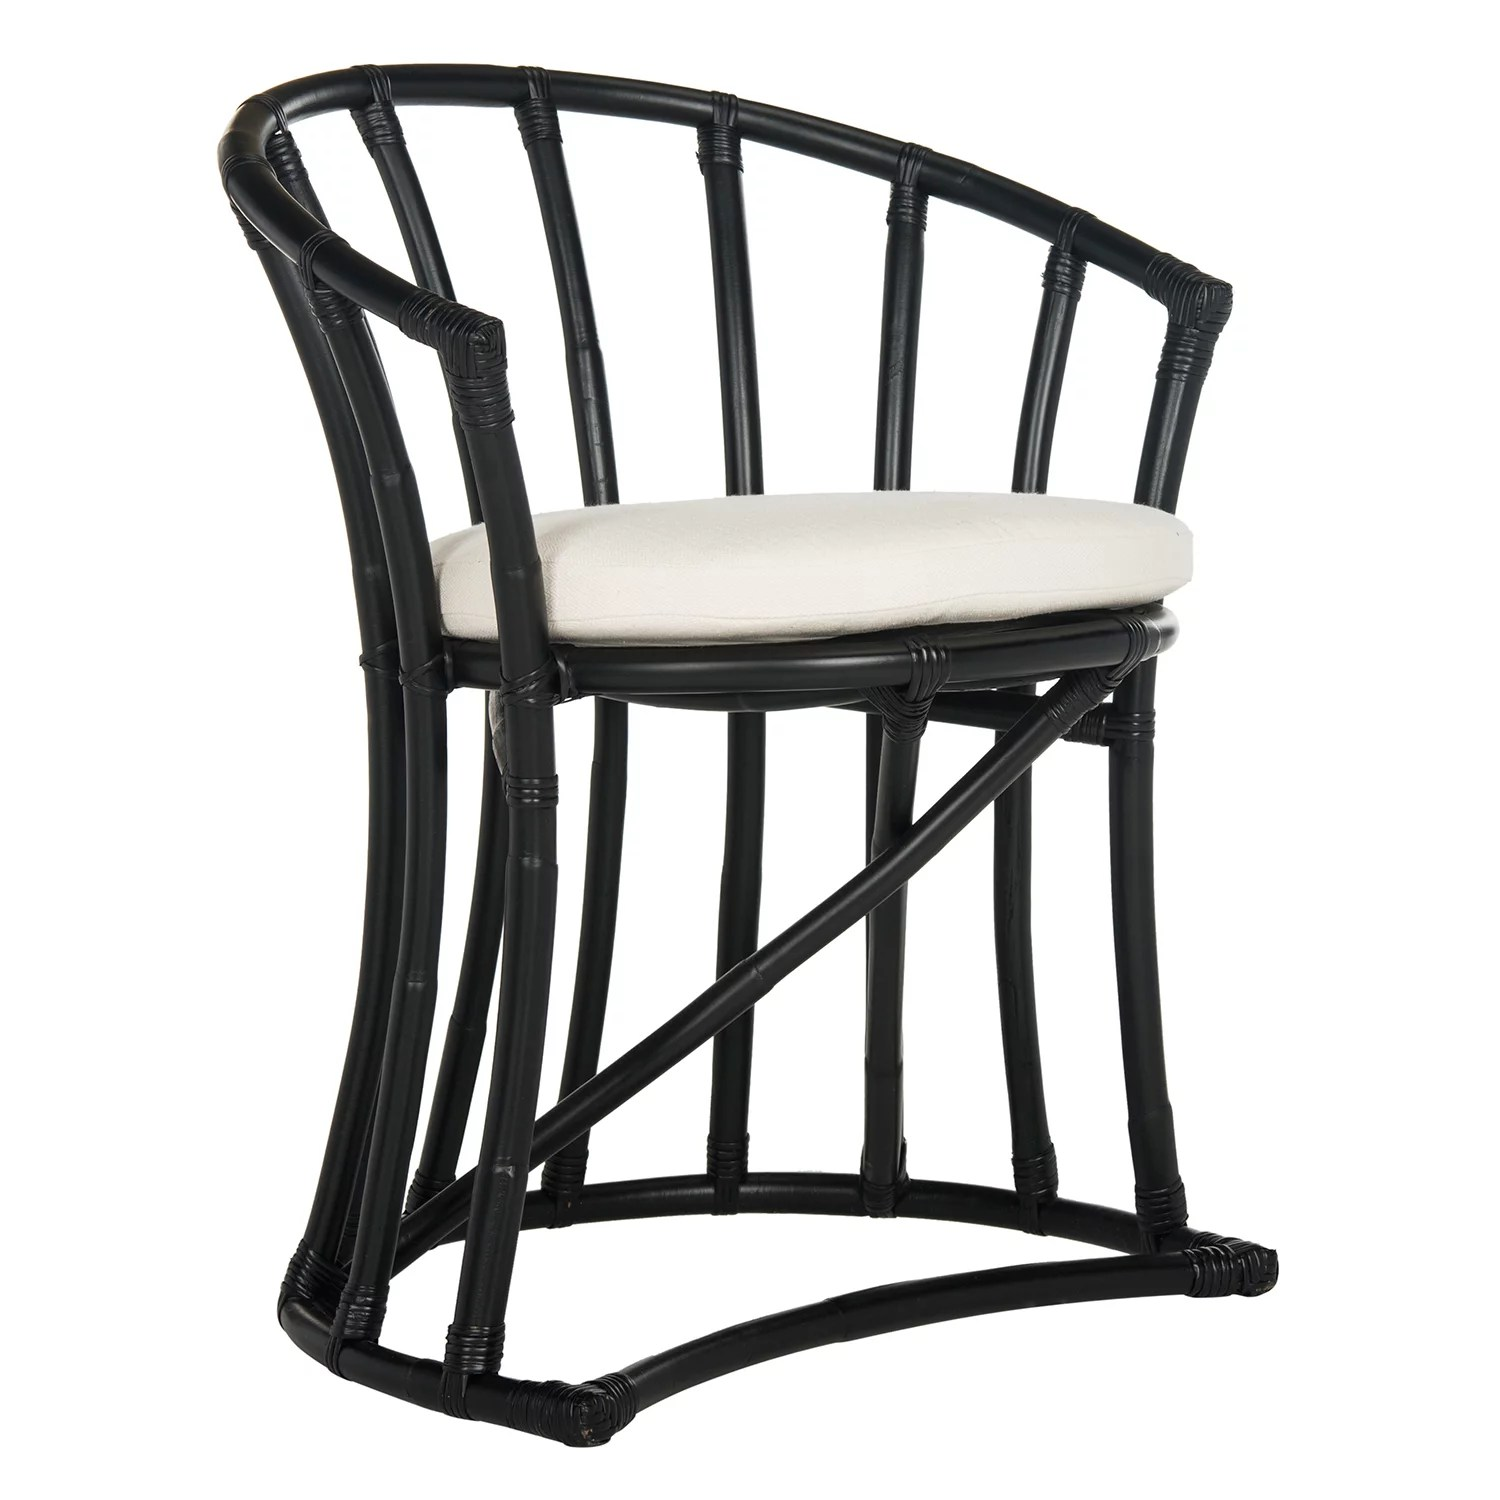 Rattan Accent Chair Safavieh Rattan Accent Chair